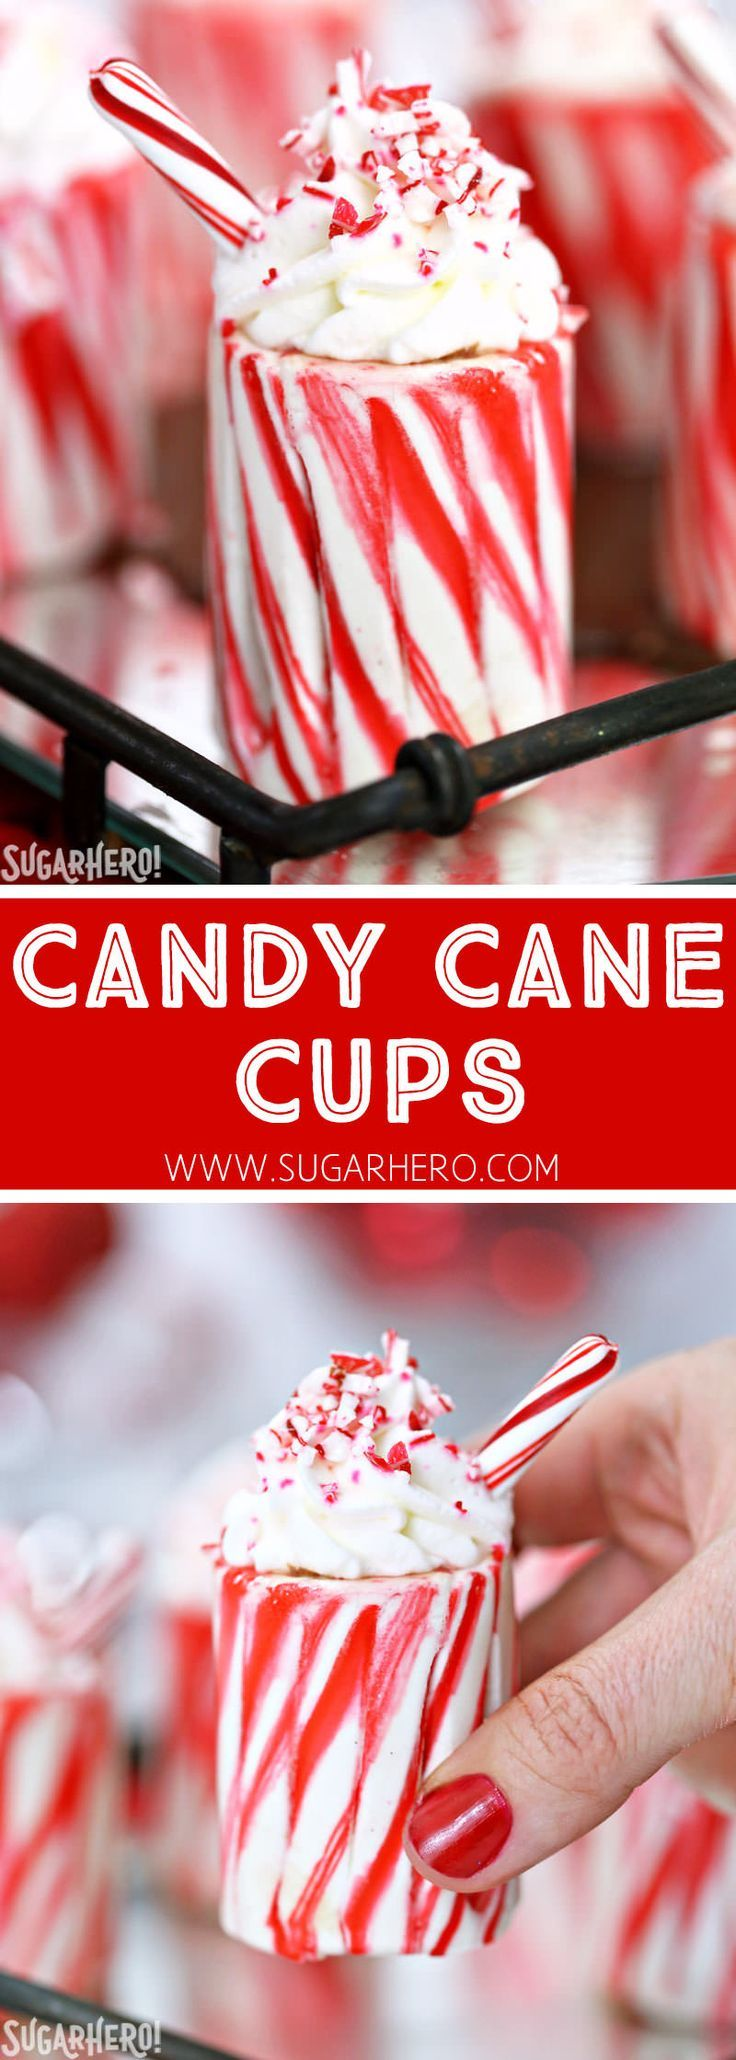 Candy Cane Cups - easy homemade candy cane shot glasses! Fill them with your favorite holiday cocktail or hot chocolate | From http://SugarHero.com